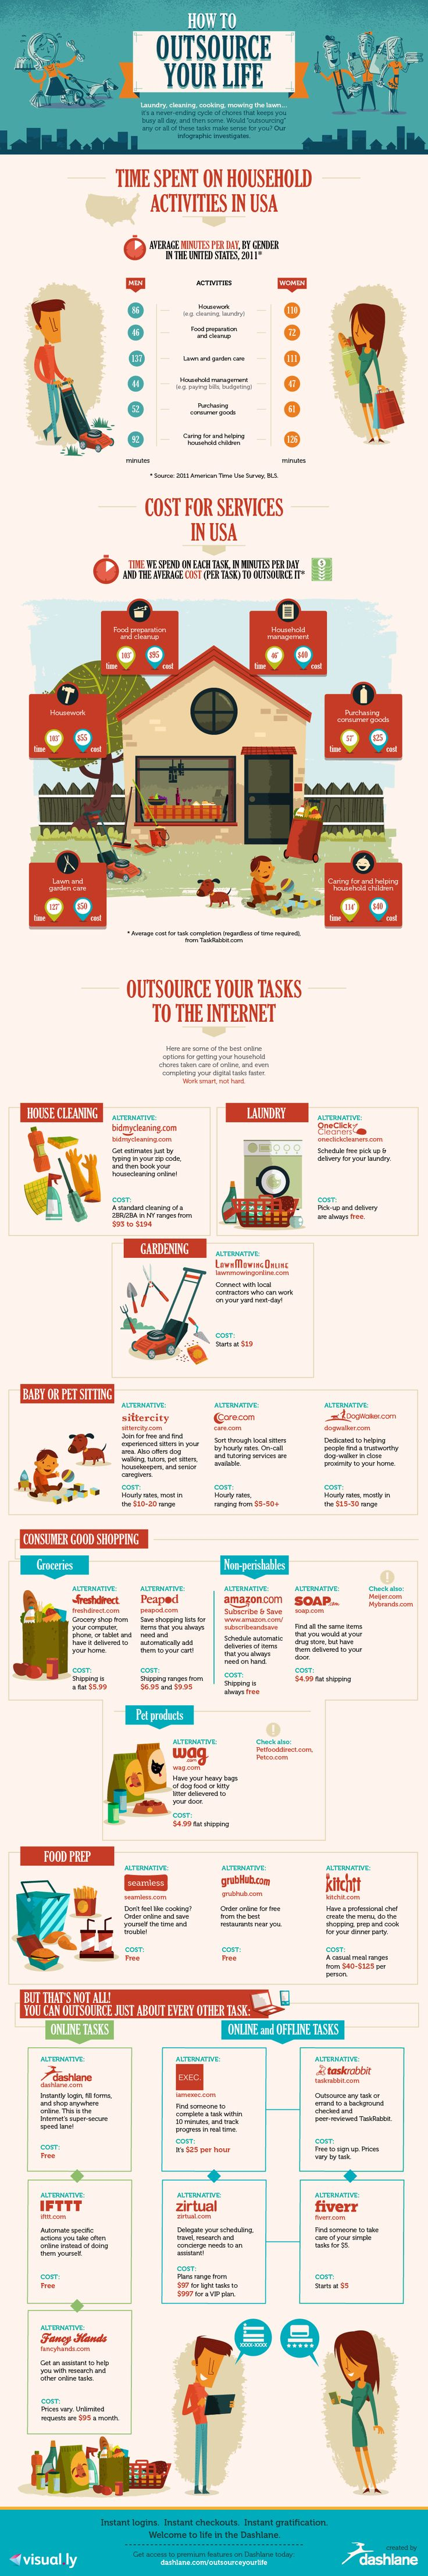 How To Outsource Your Life #INFOGRAPHIC